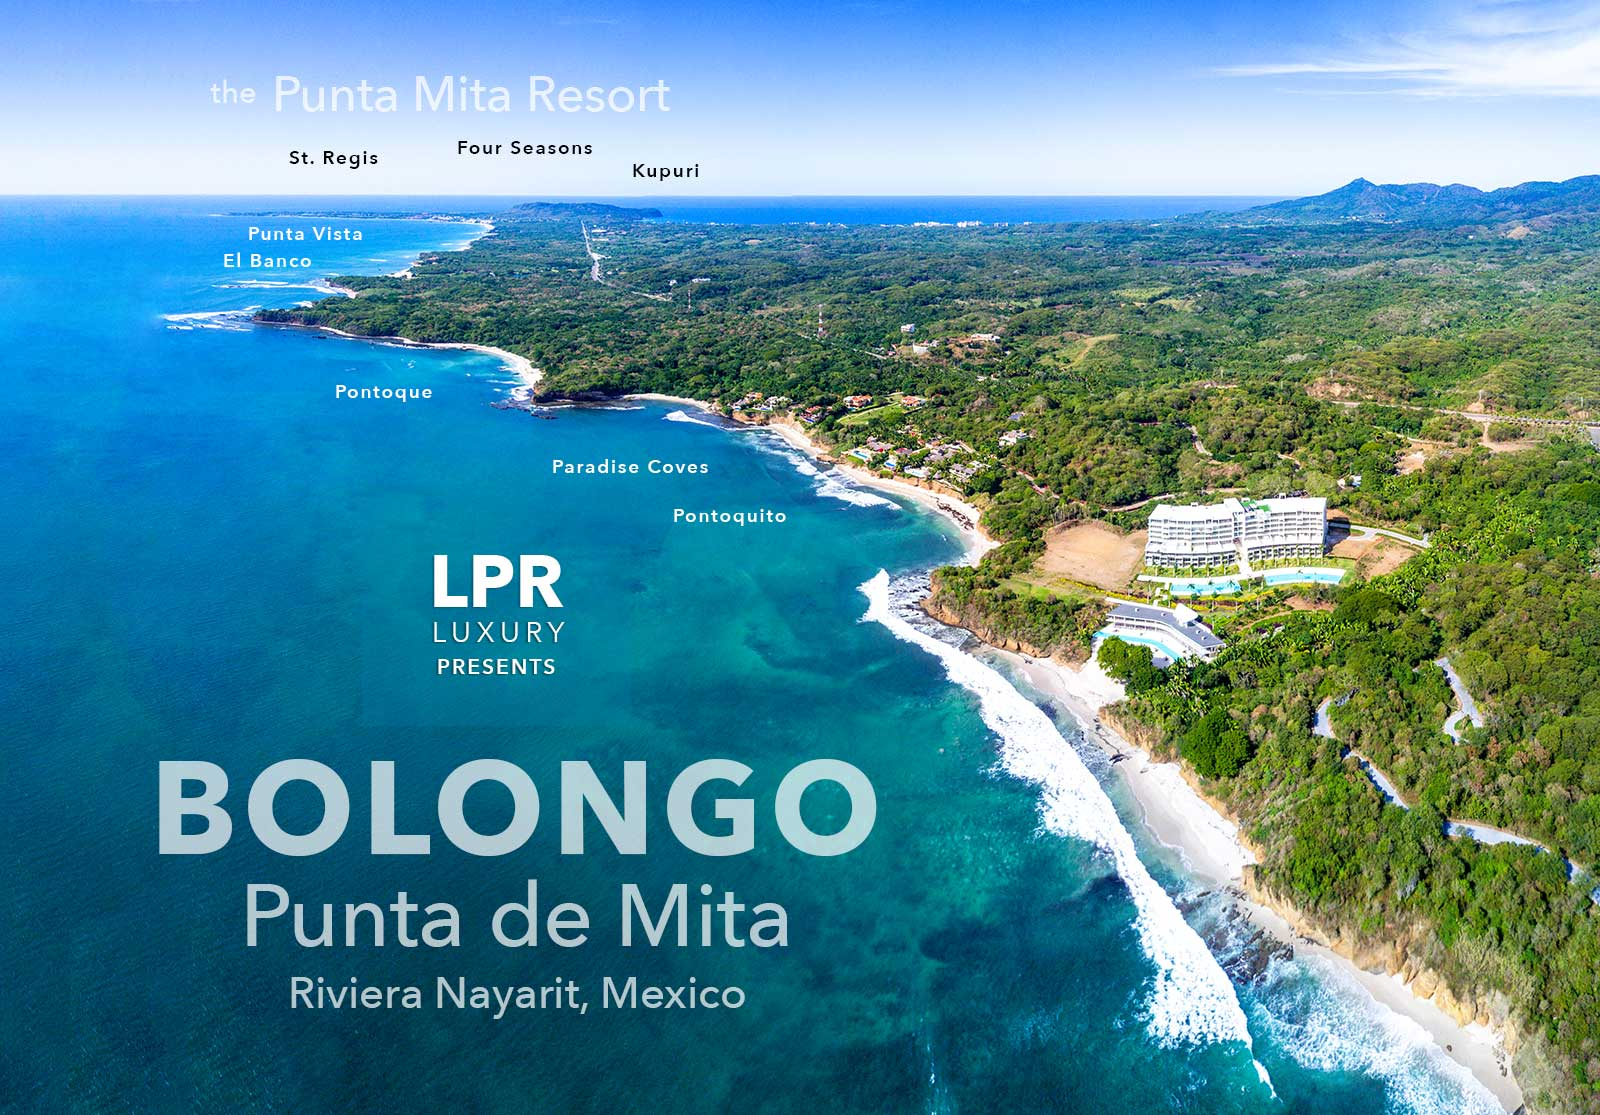 Bolongo - Punta de Mita - Luxury Real Estate North of Puerto Vallarta, Mexico